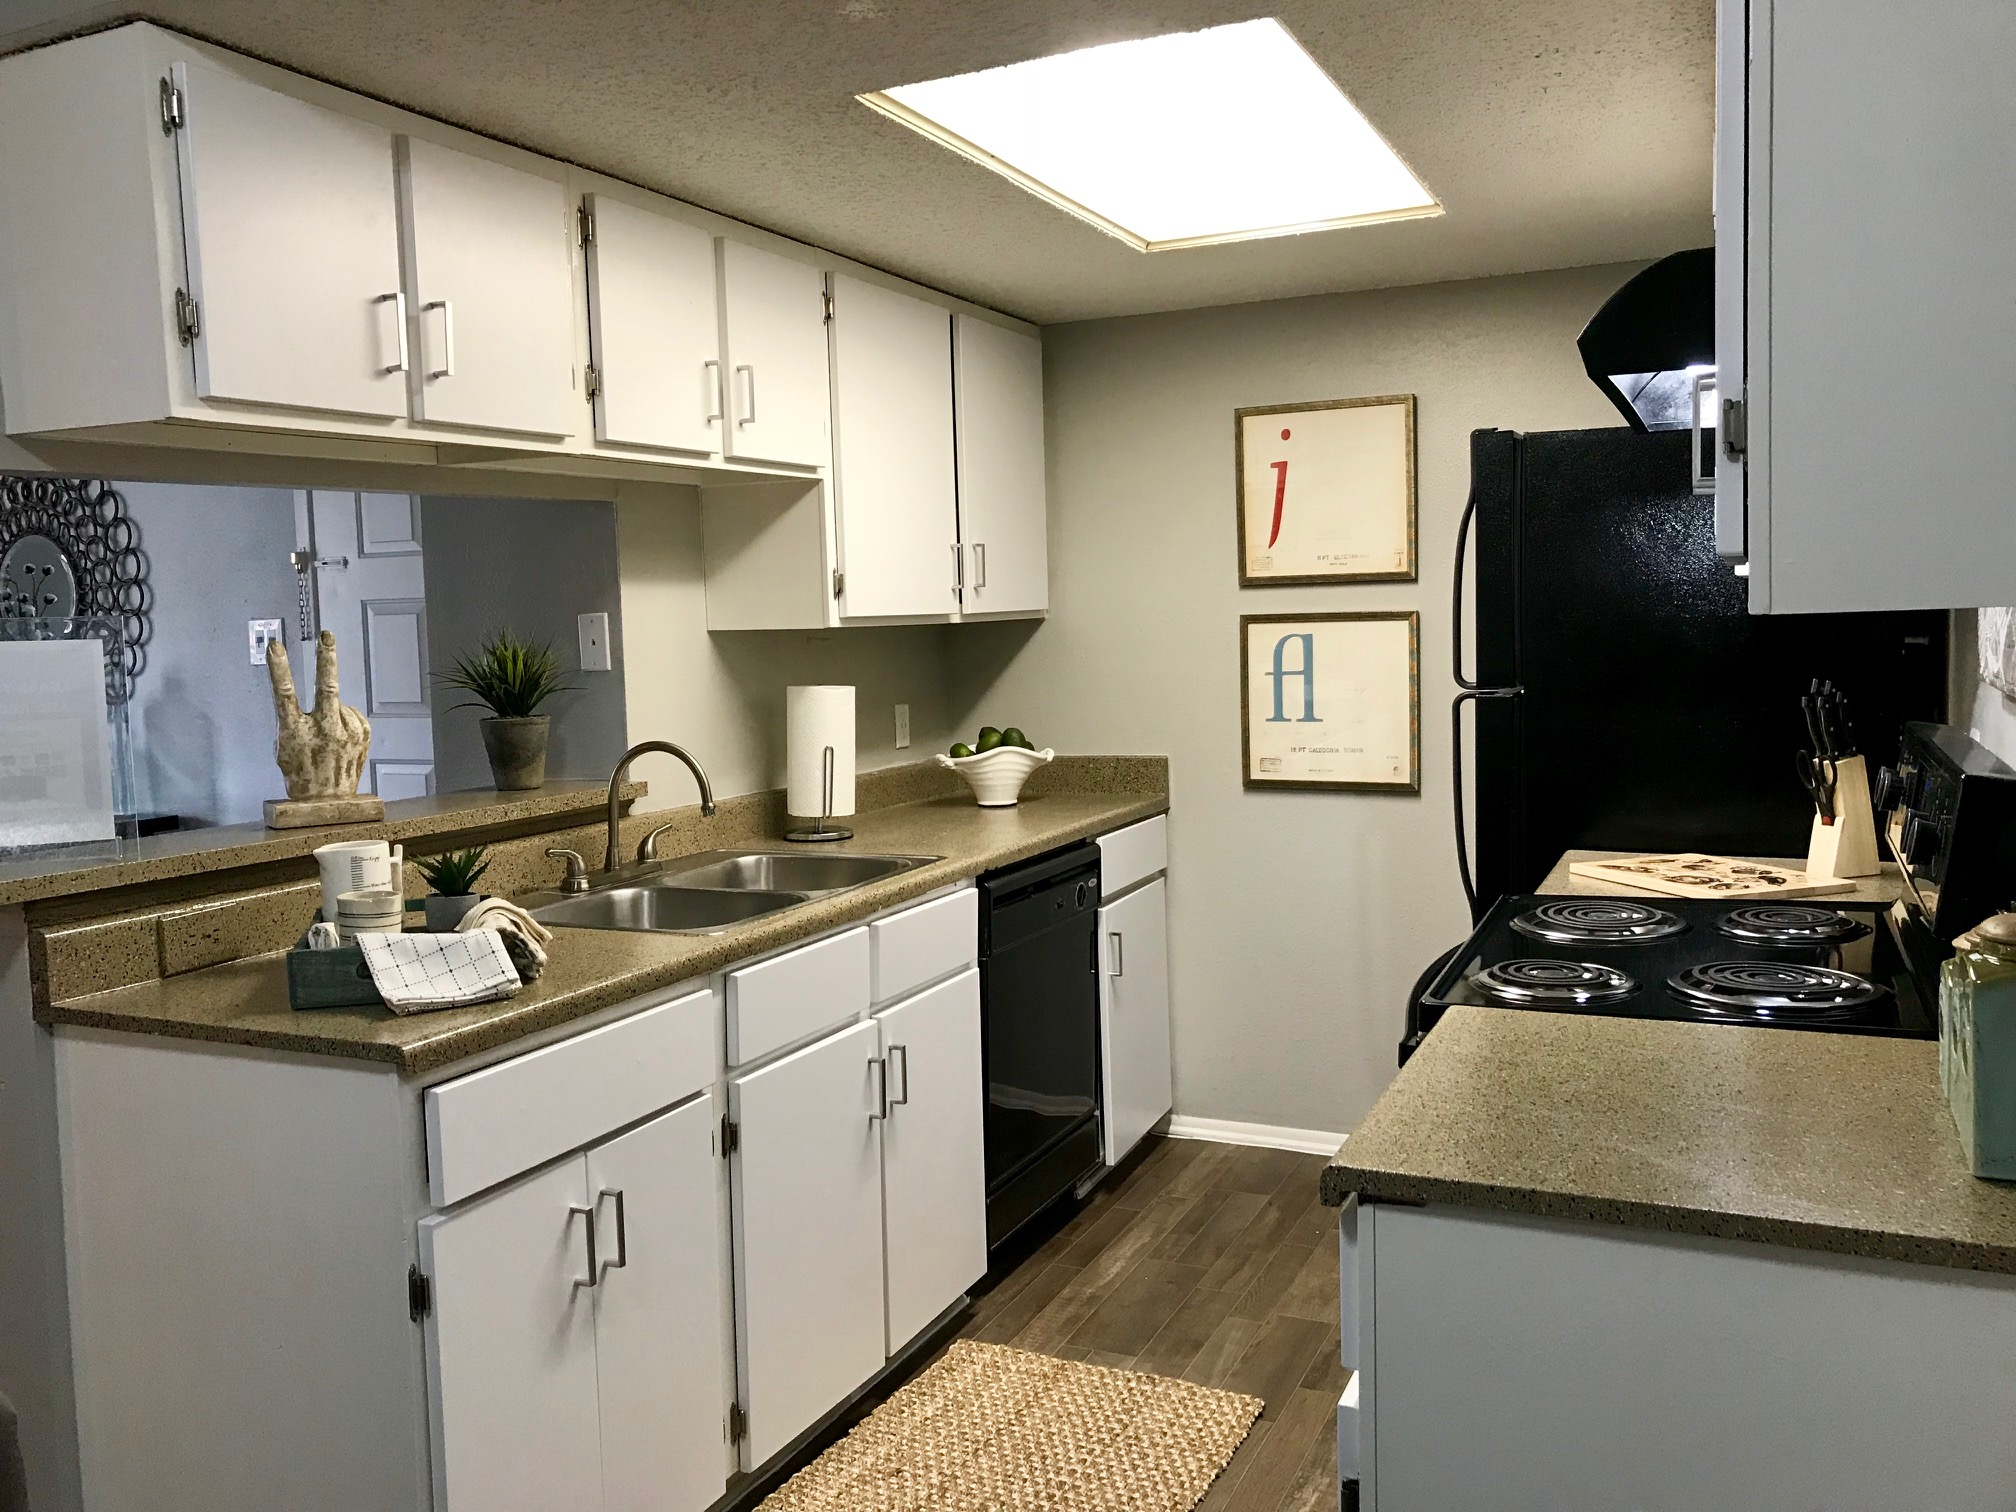 Kitchen at Stonehill at Pipers Creek Apartments in San Antonio, Texas